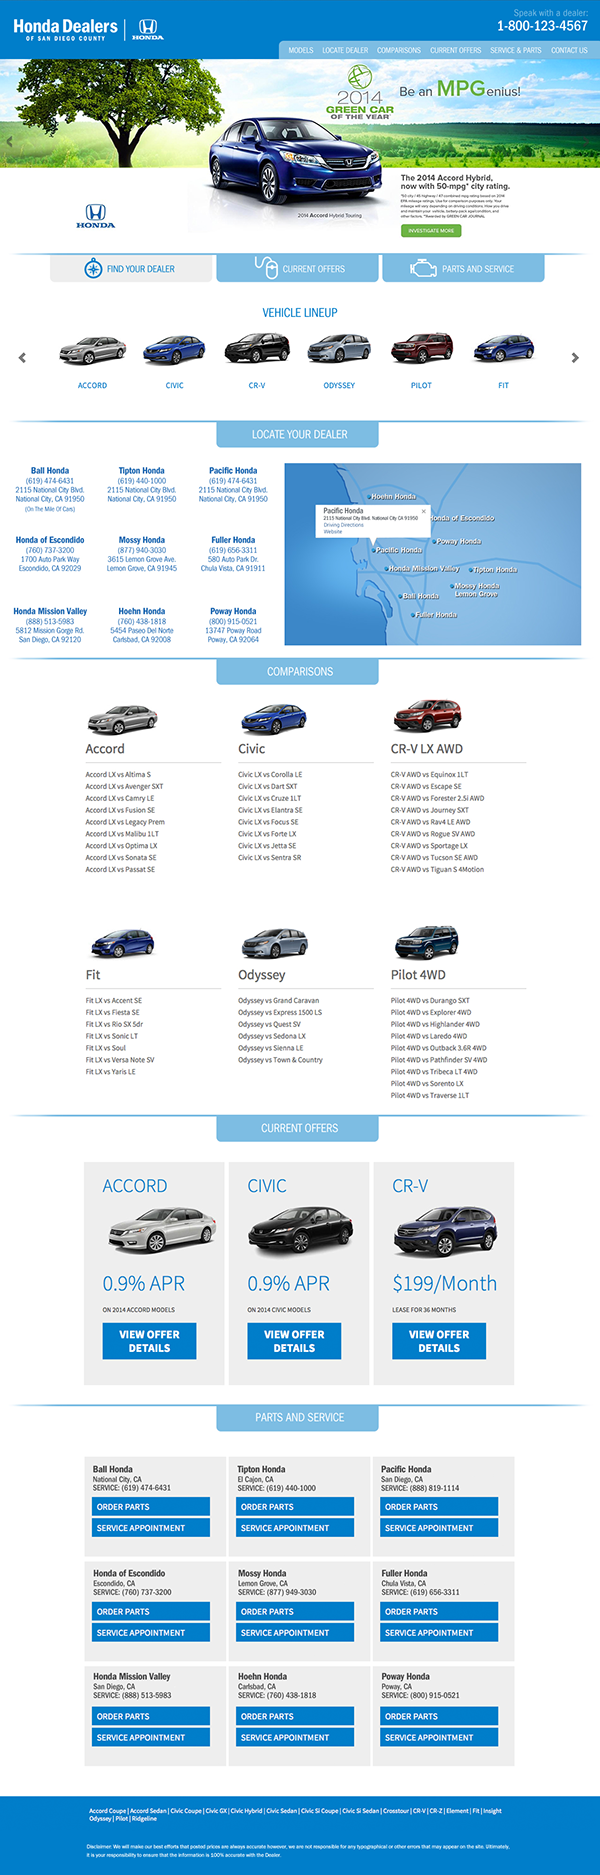 Honda Dealers San Diego Other Graphic Design Projects On Behance